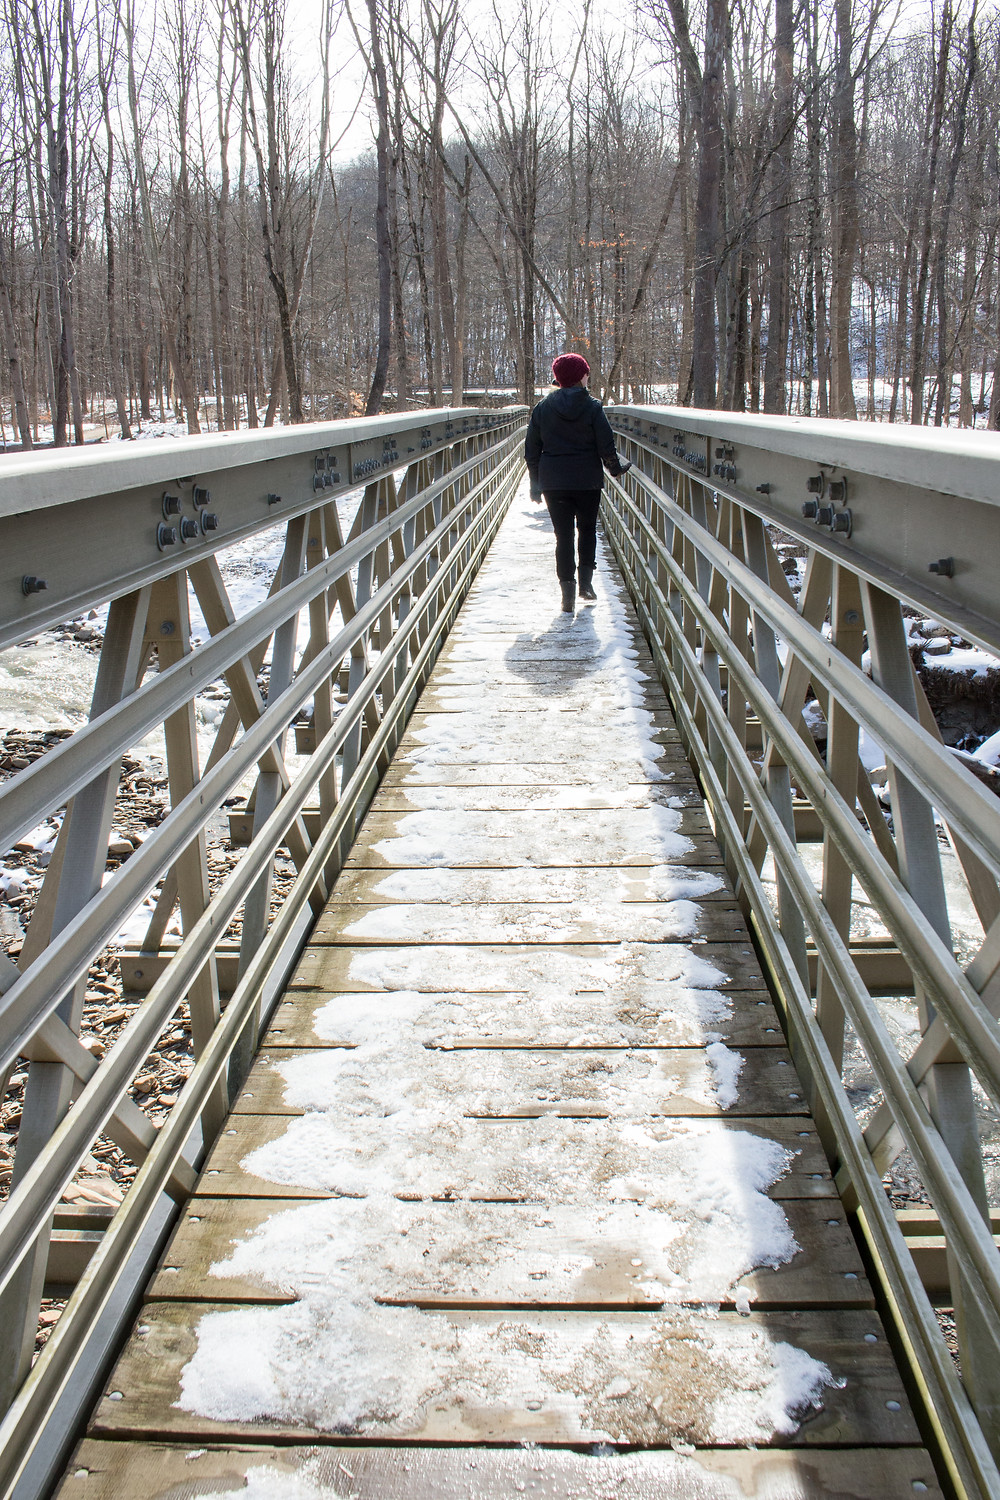 The Stanford Trail at Cuyahoga National Park